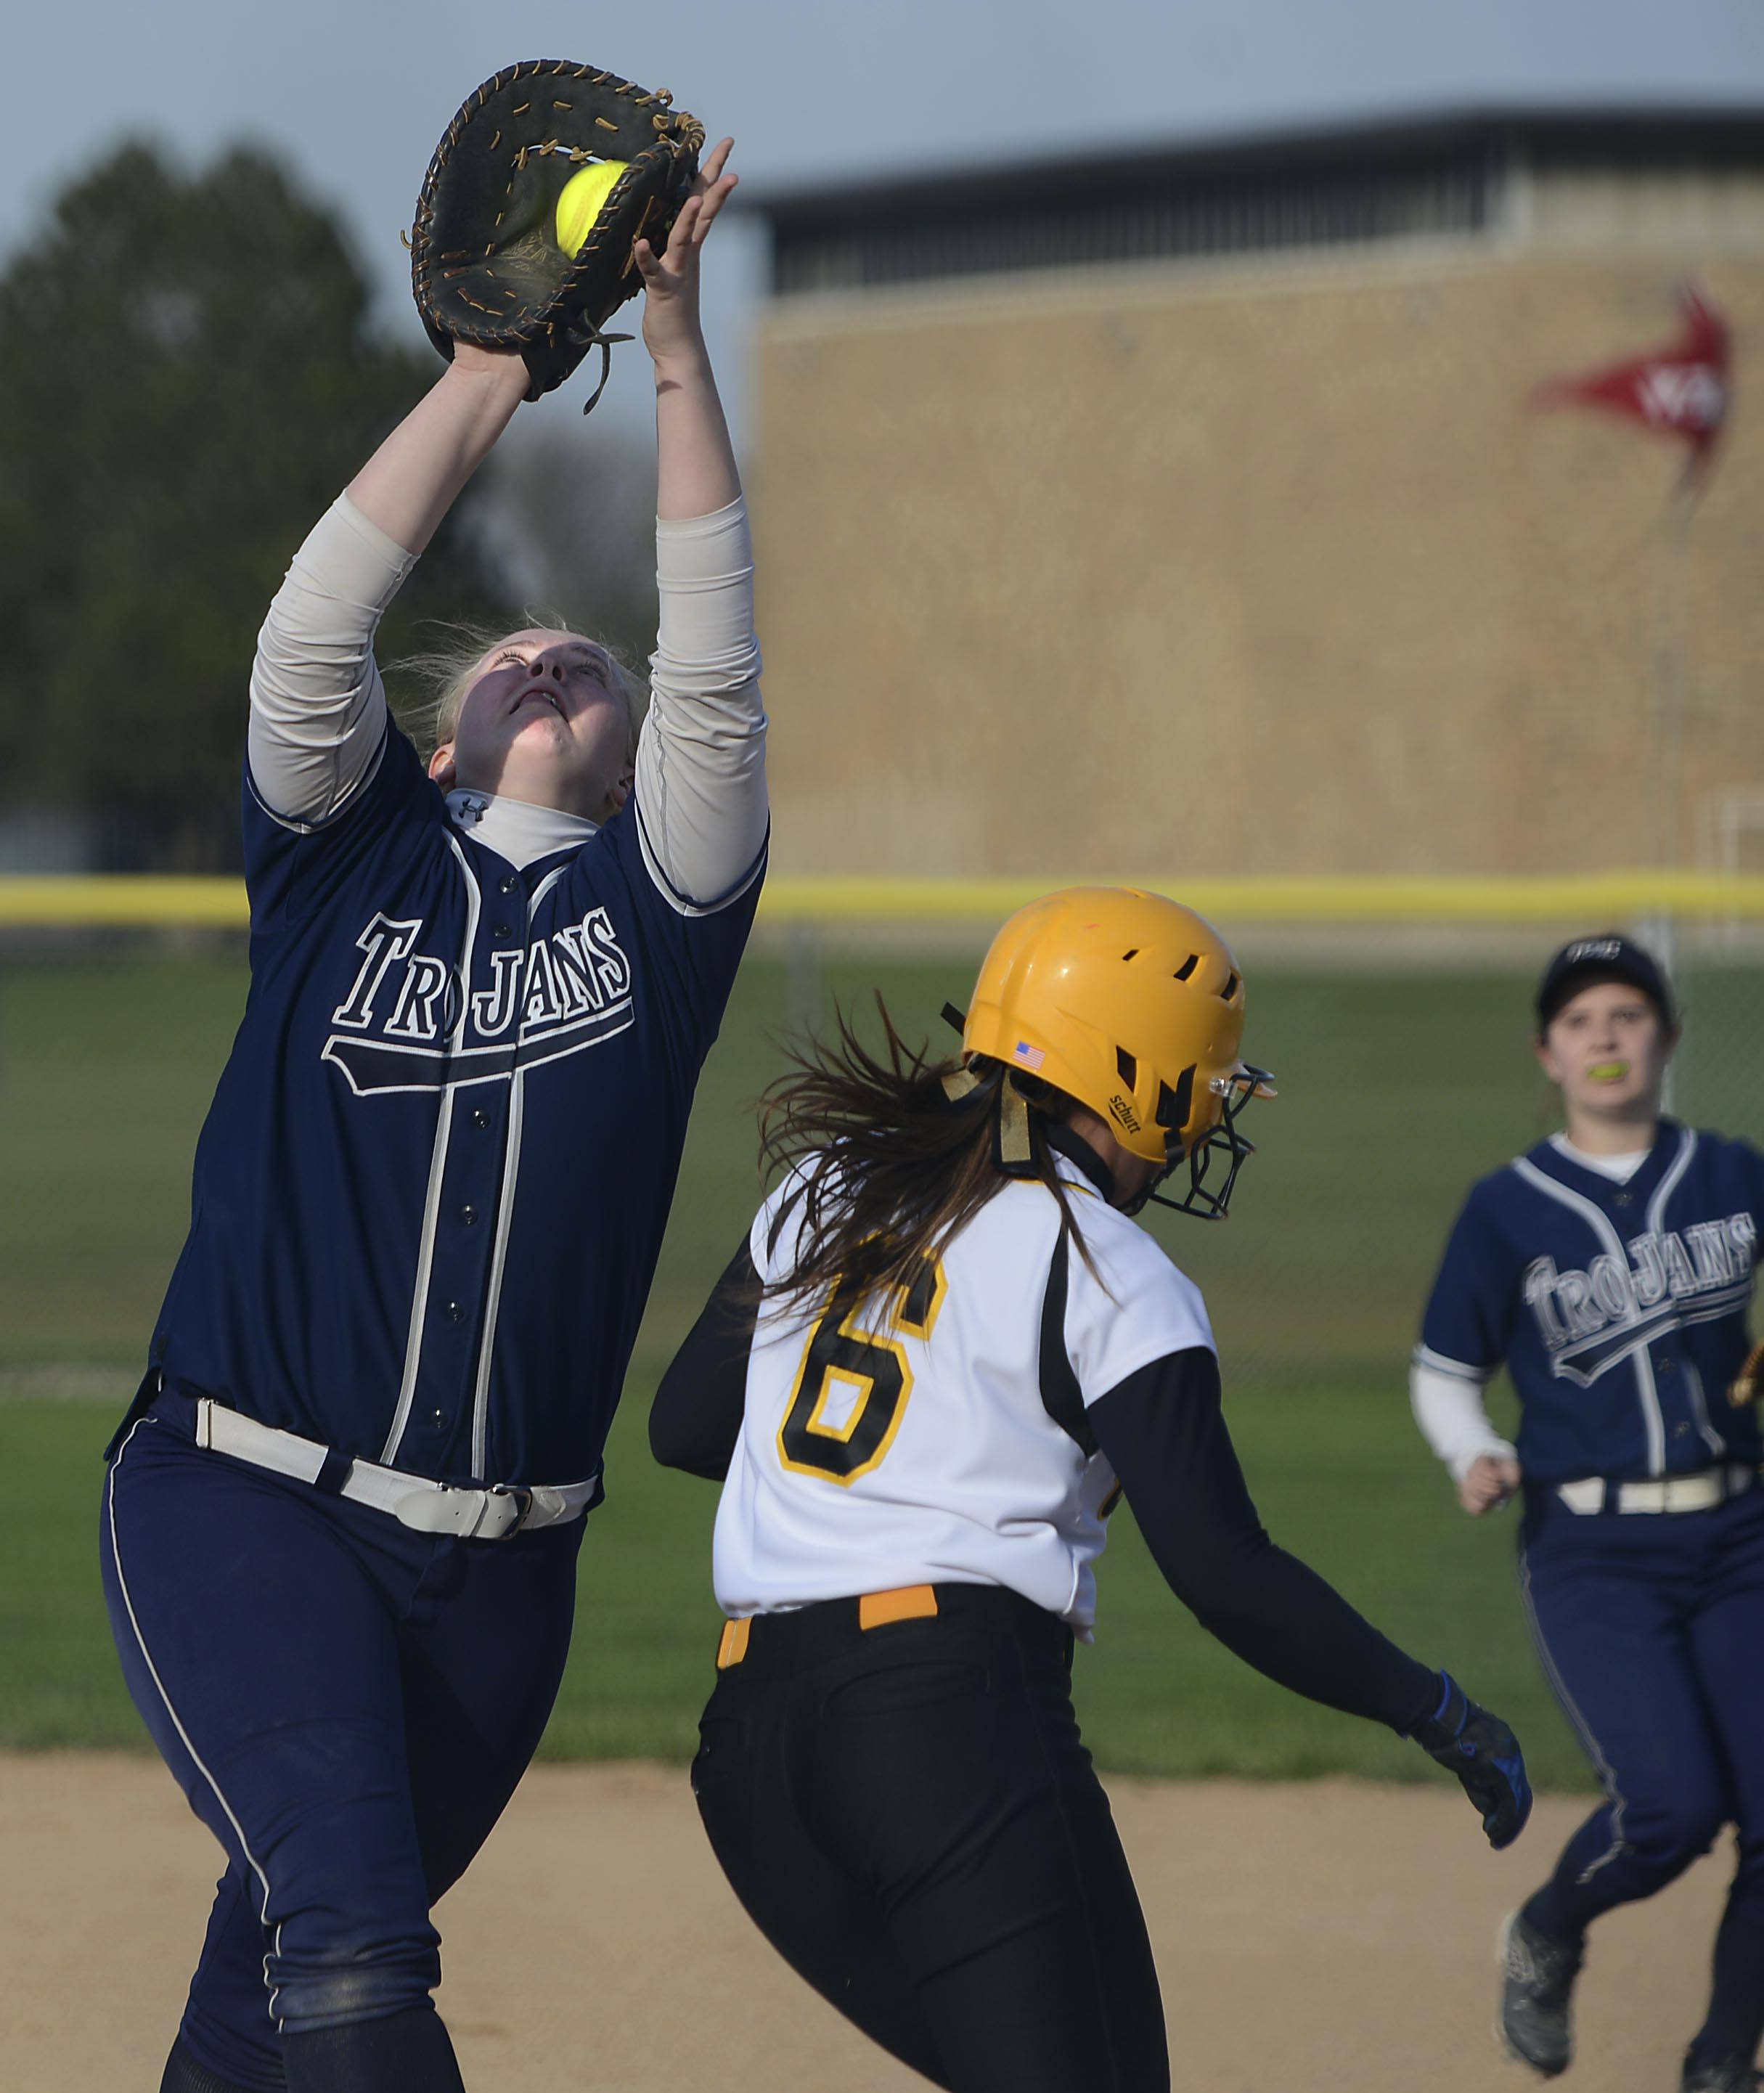 Cary-Grove first baseman Brianne Prank catches a pop up by Jacobs' Danielle O'Toole in the fourth inning Tuesday in Cary.